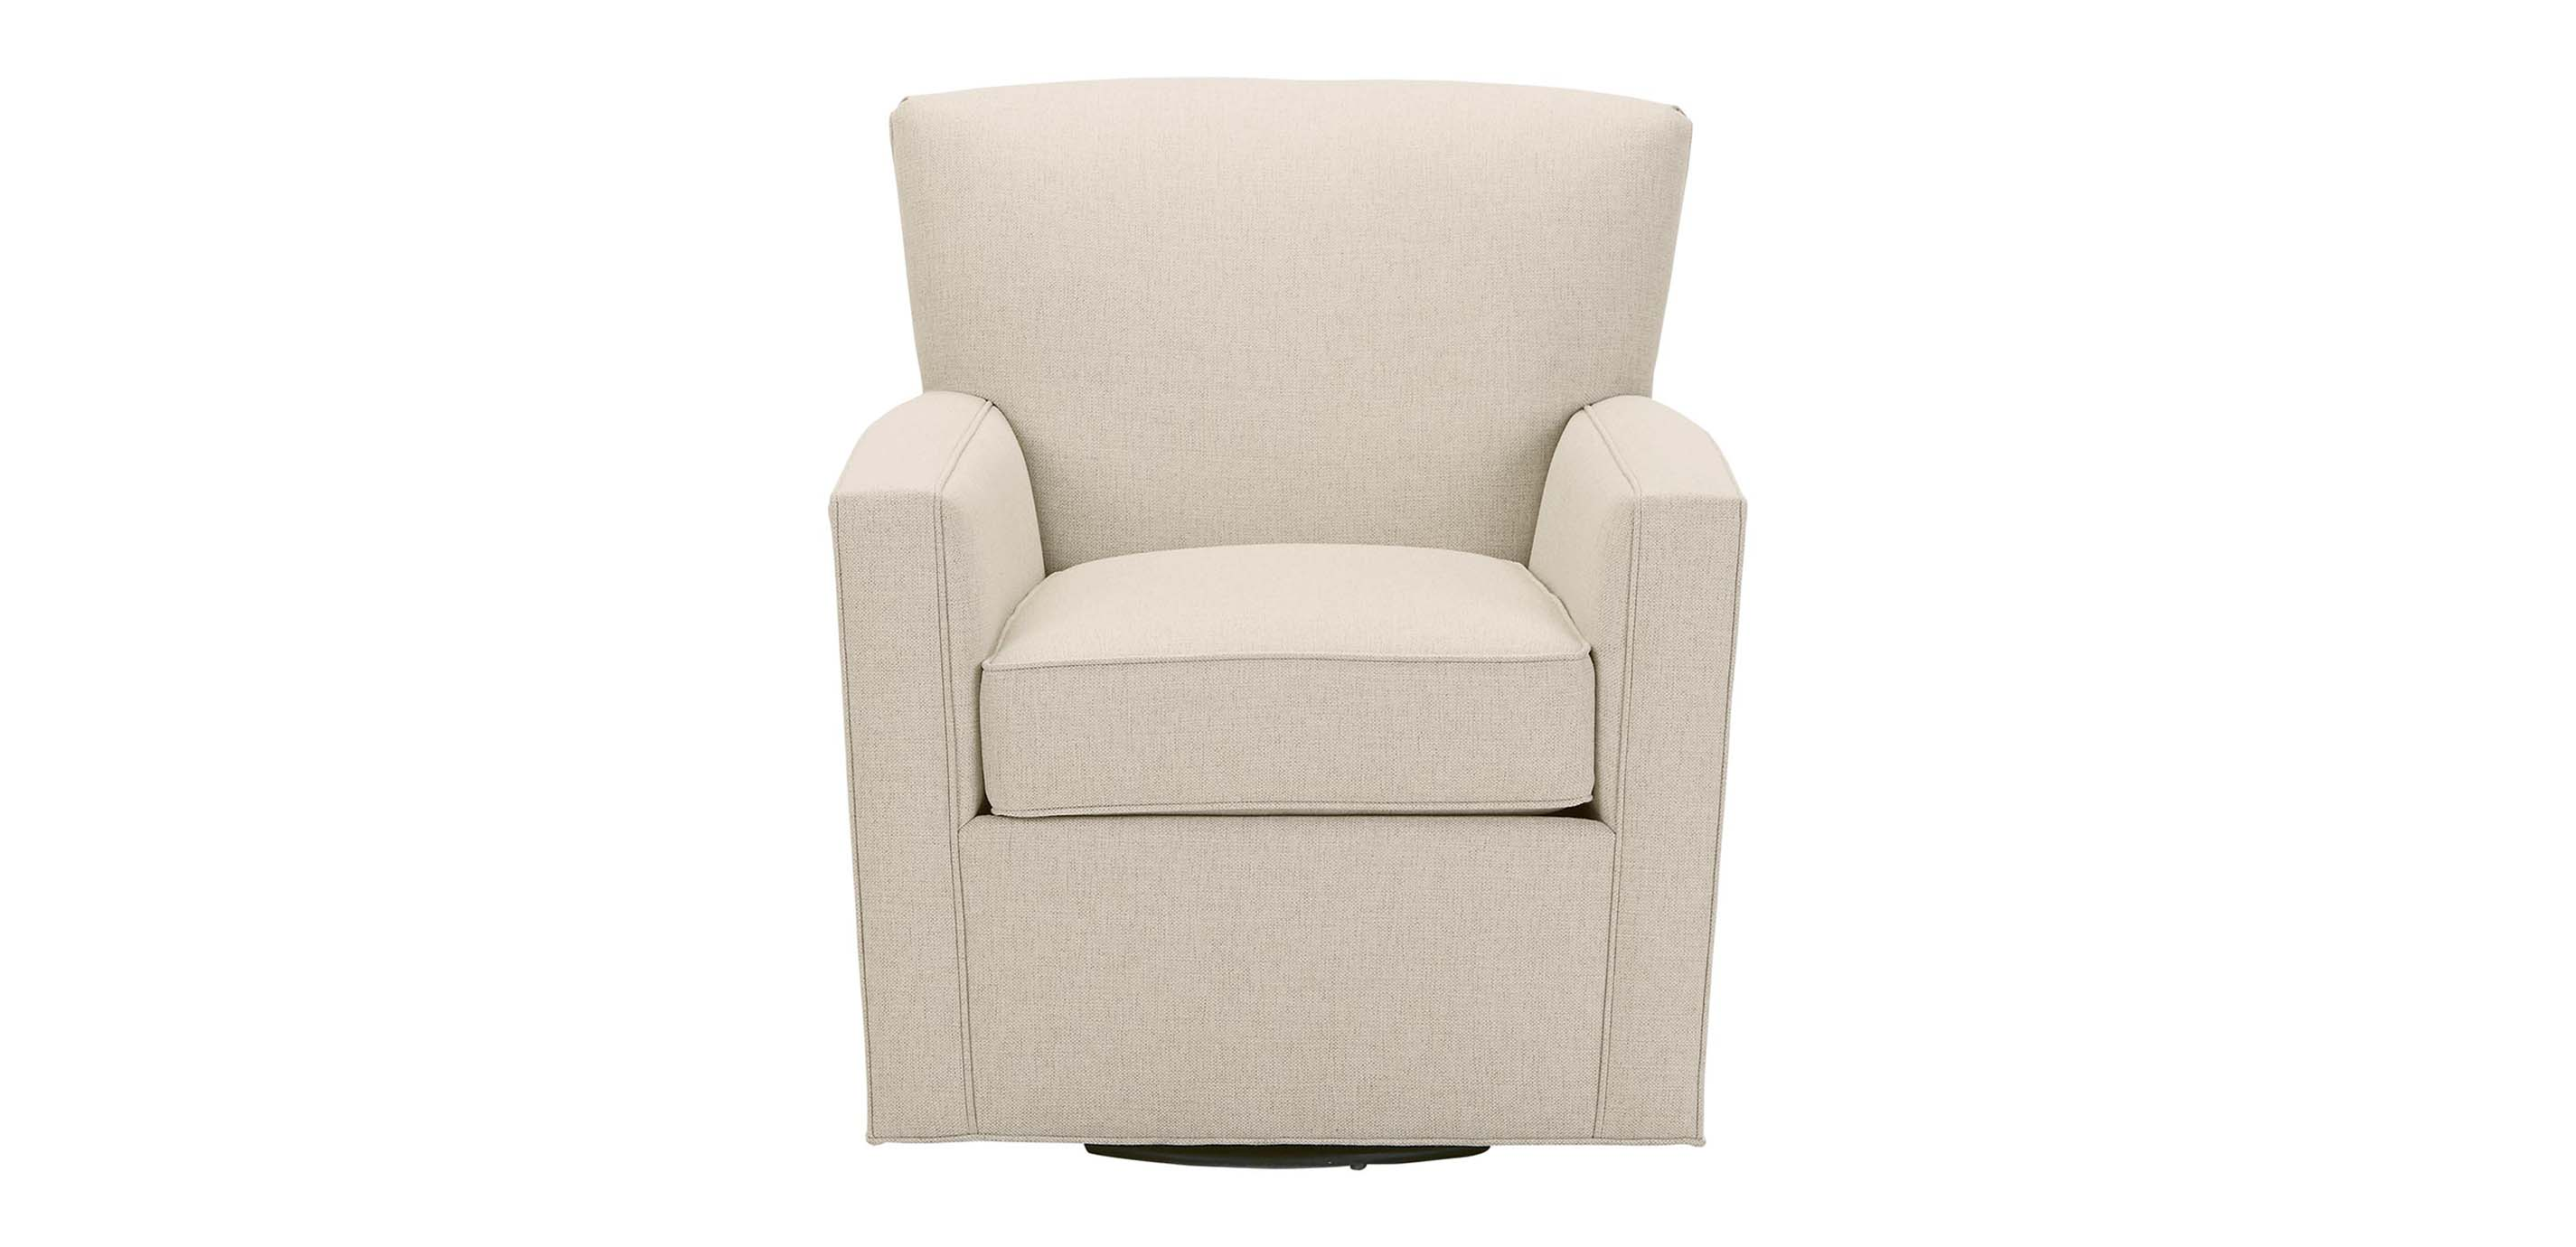 Swivel Living Room Chairs Living Room Chairs Accent Chairs For Living Room Ethan Allen